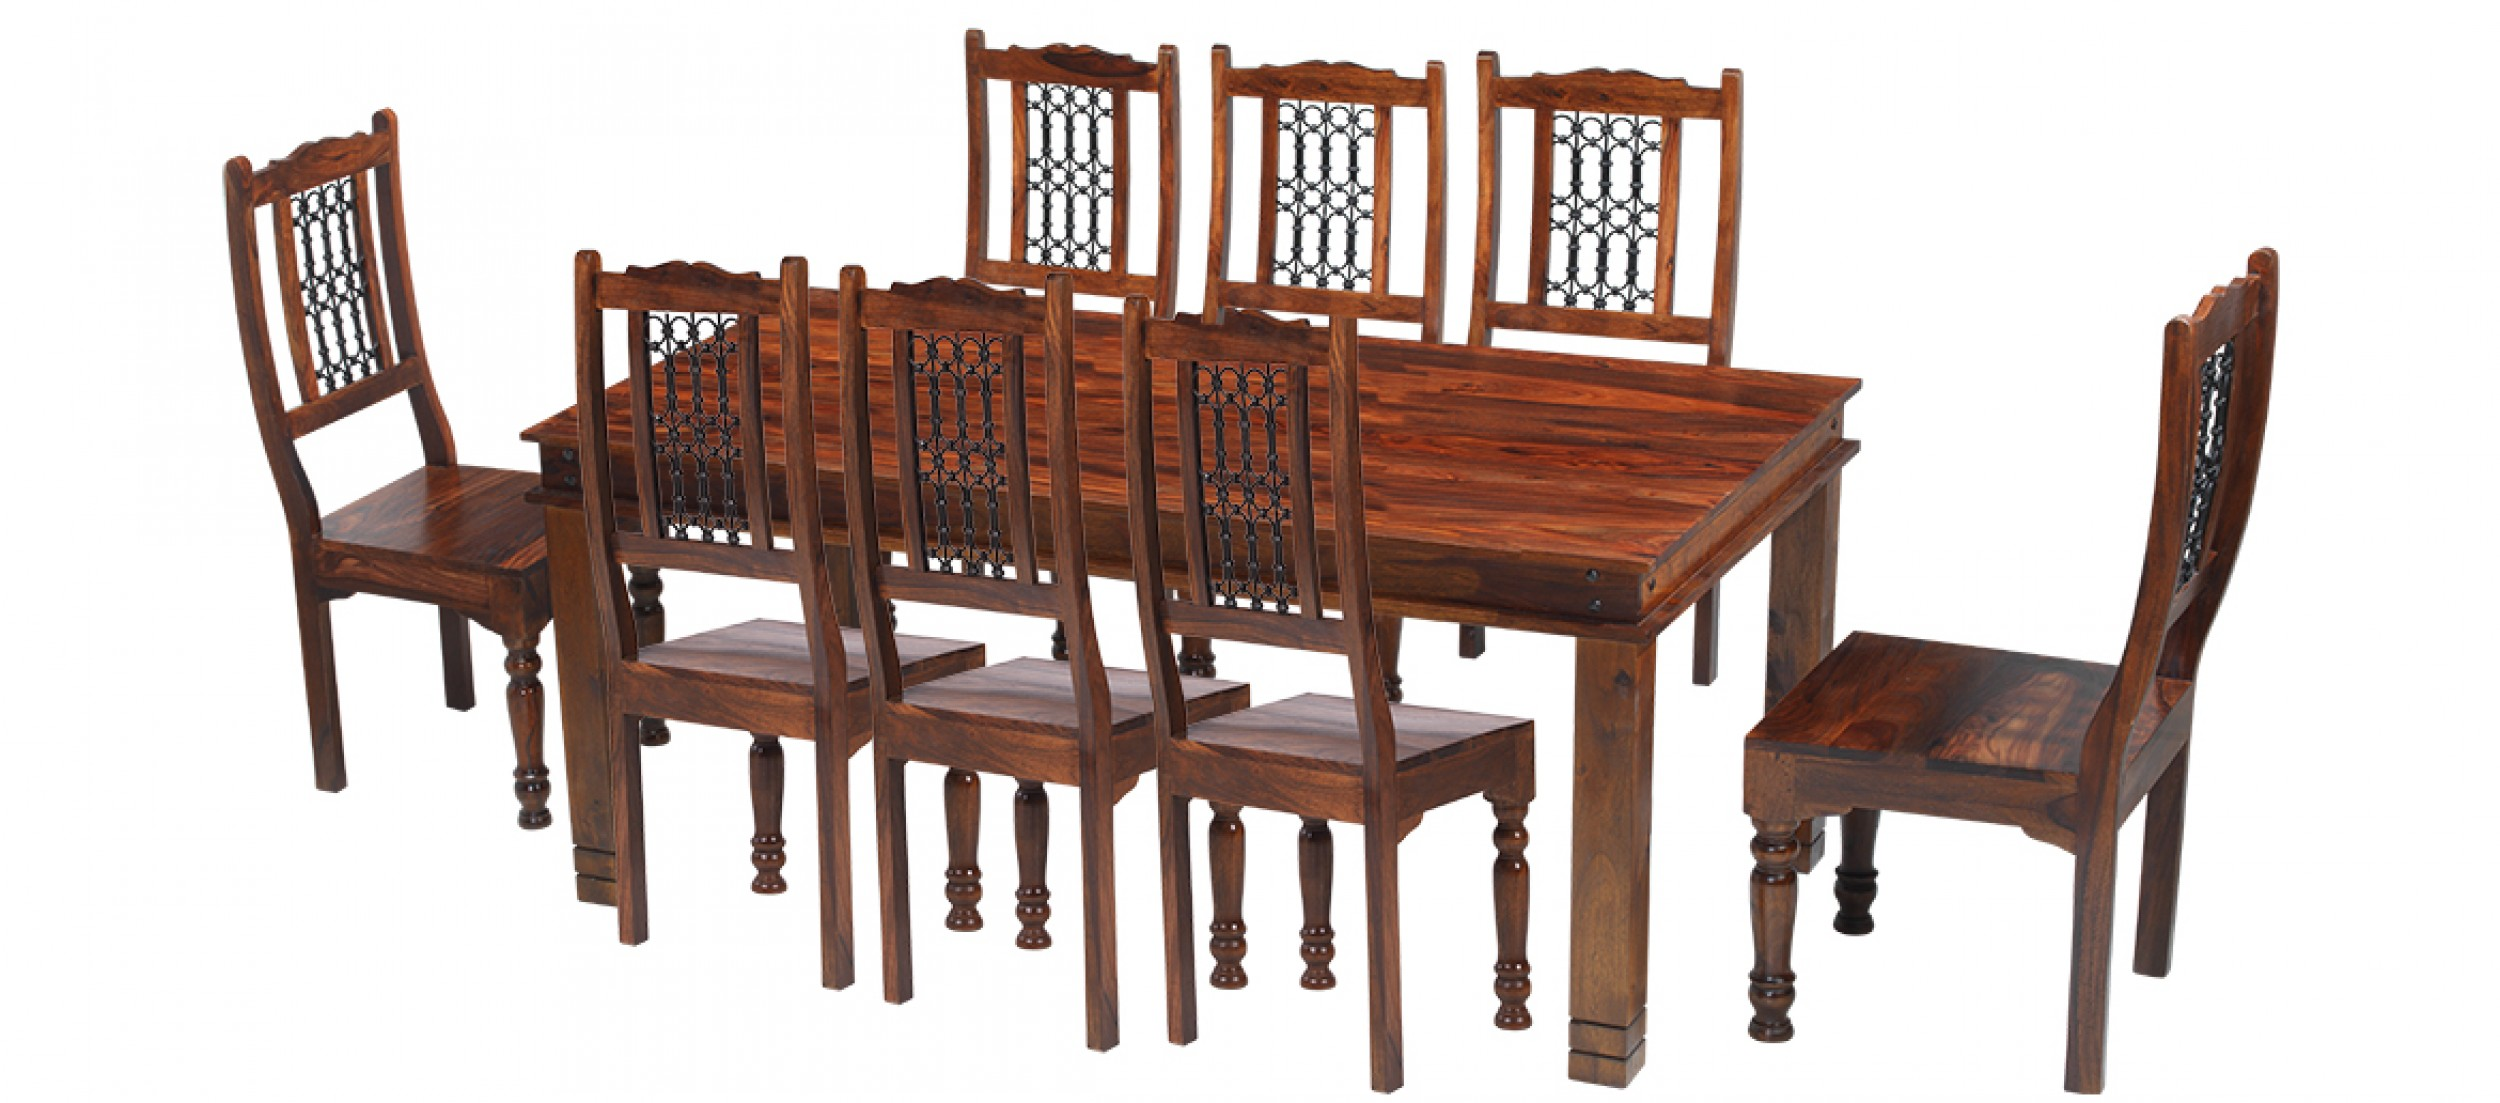 Jali sheesham 200 cm chunky dining table and 8 chairs for Dining table and 8 chairs